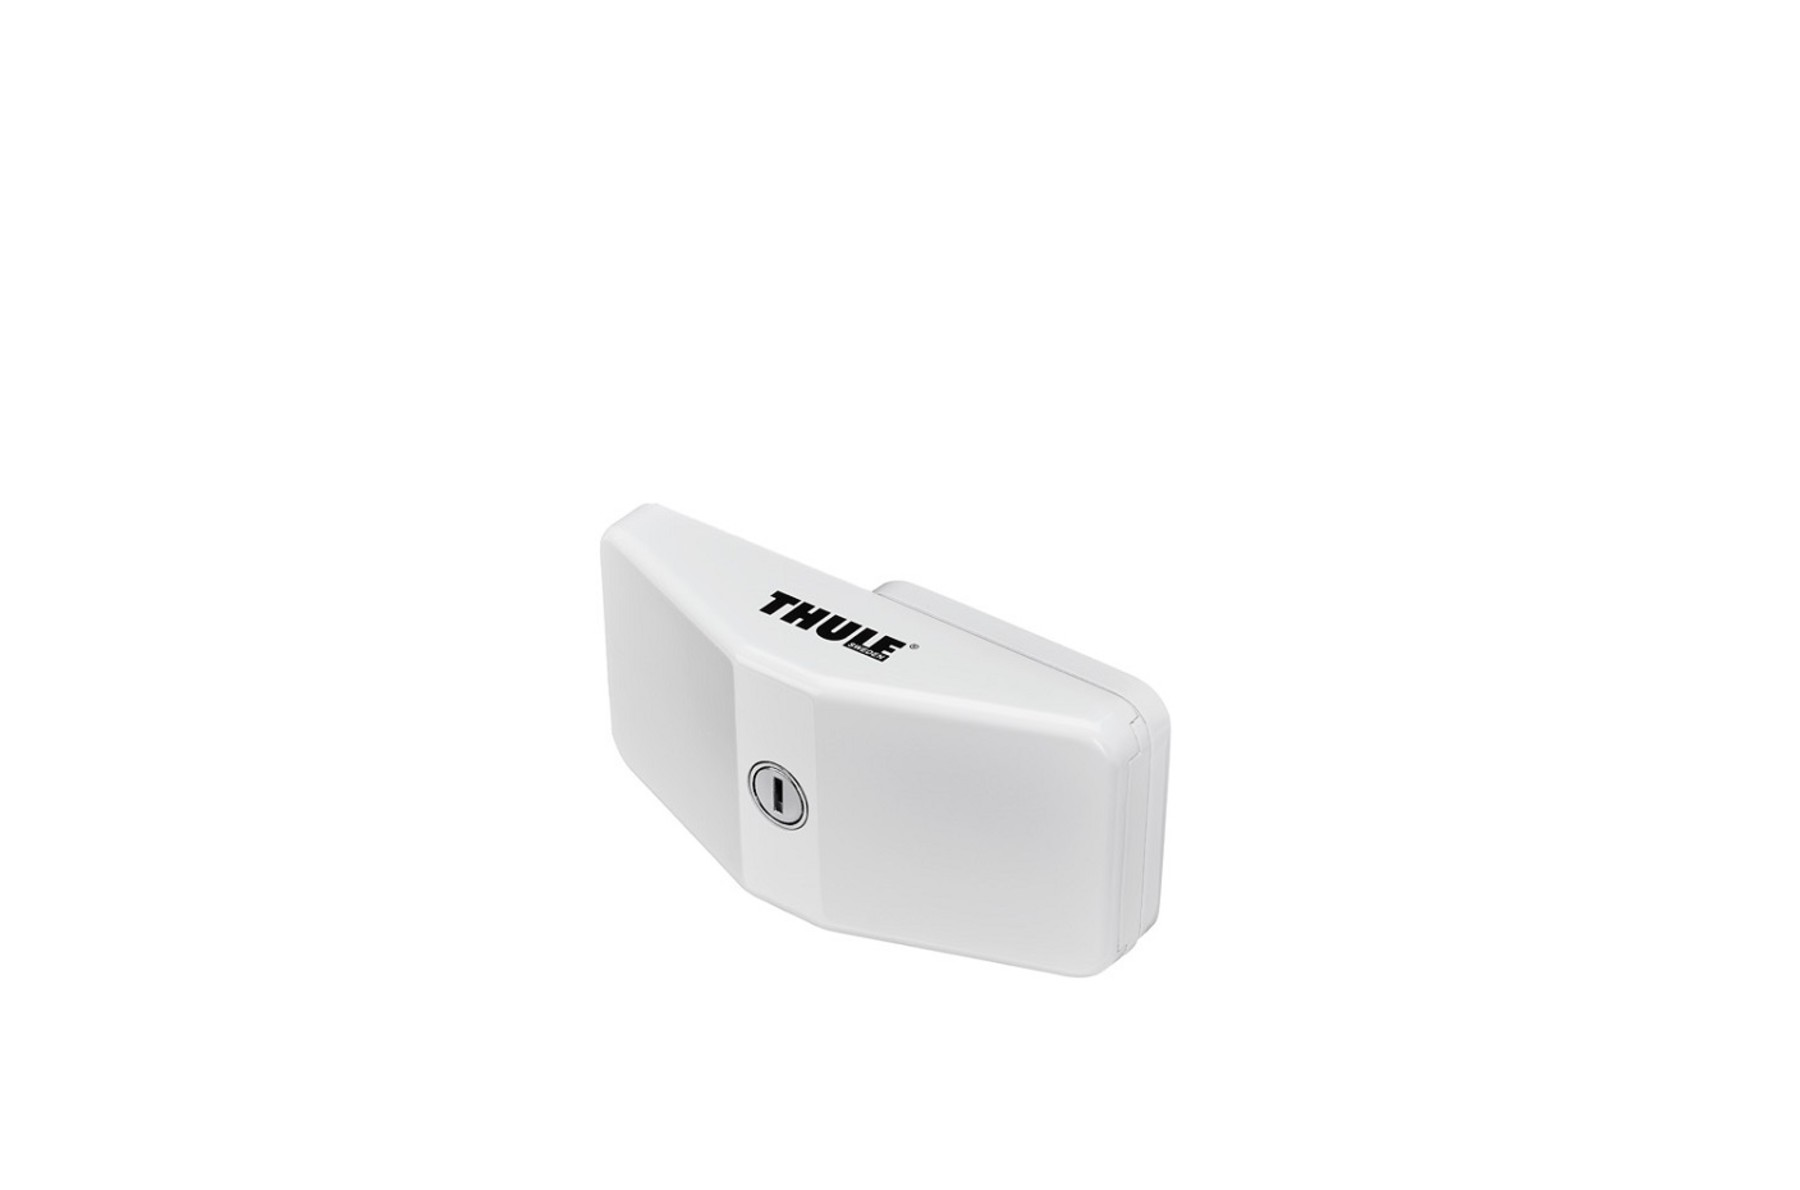 Thule Door Lock Studio 308888